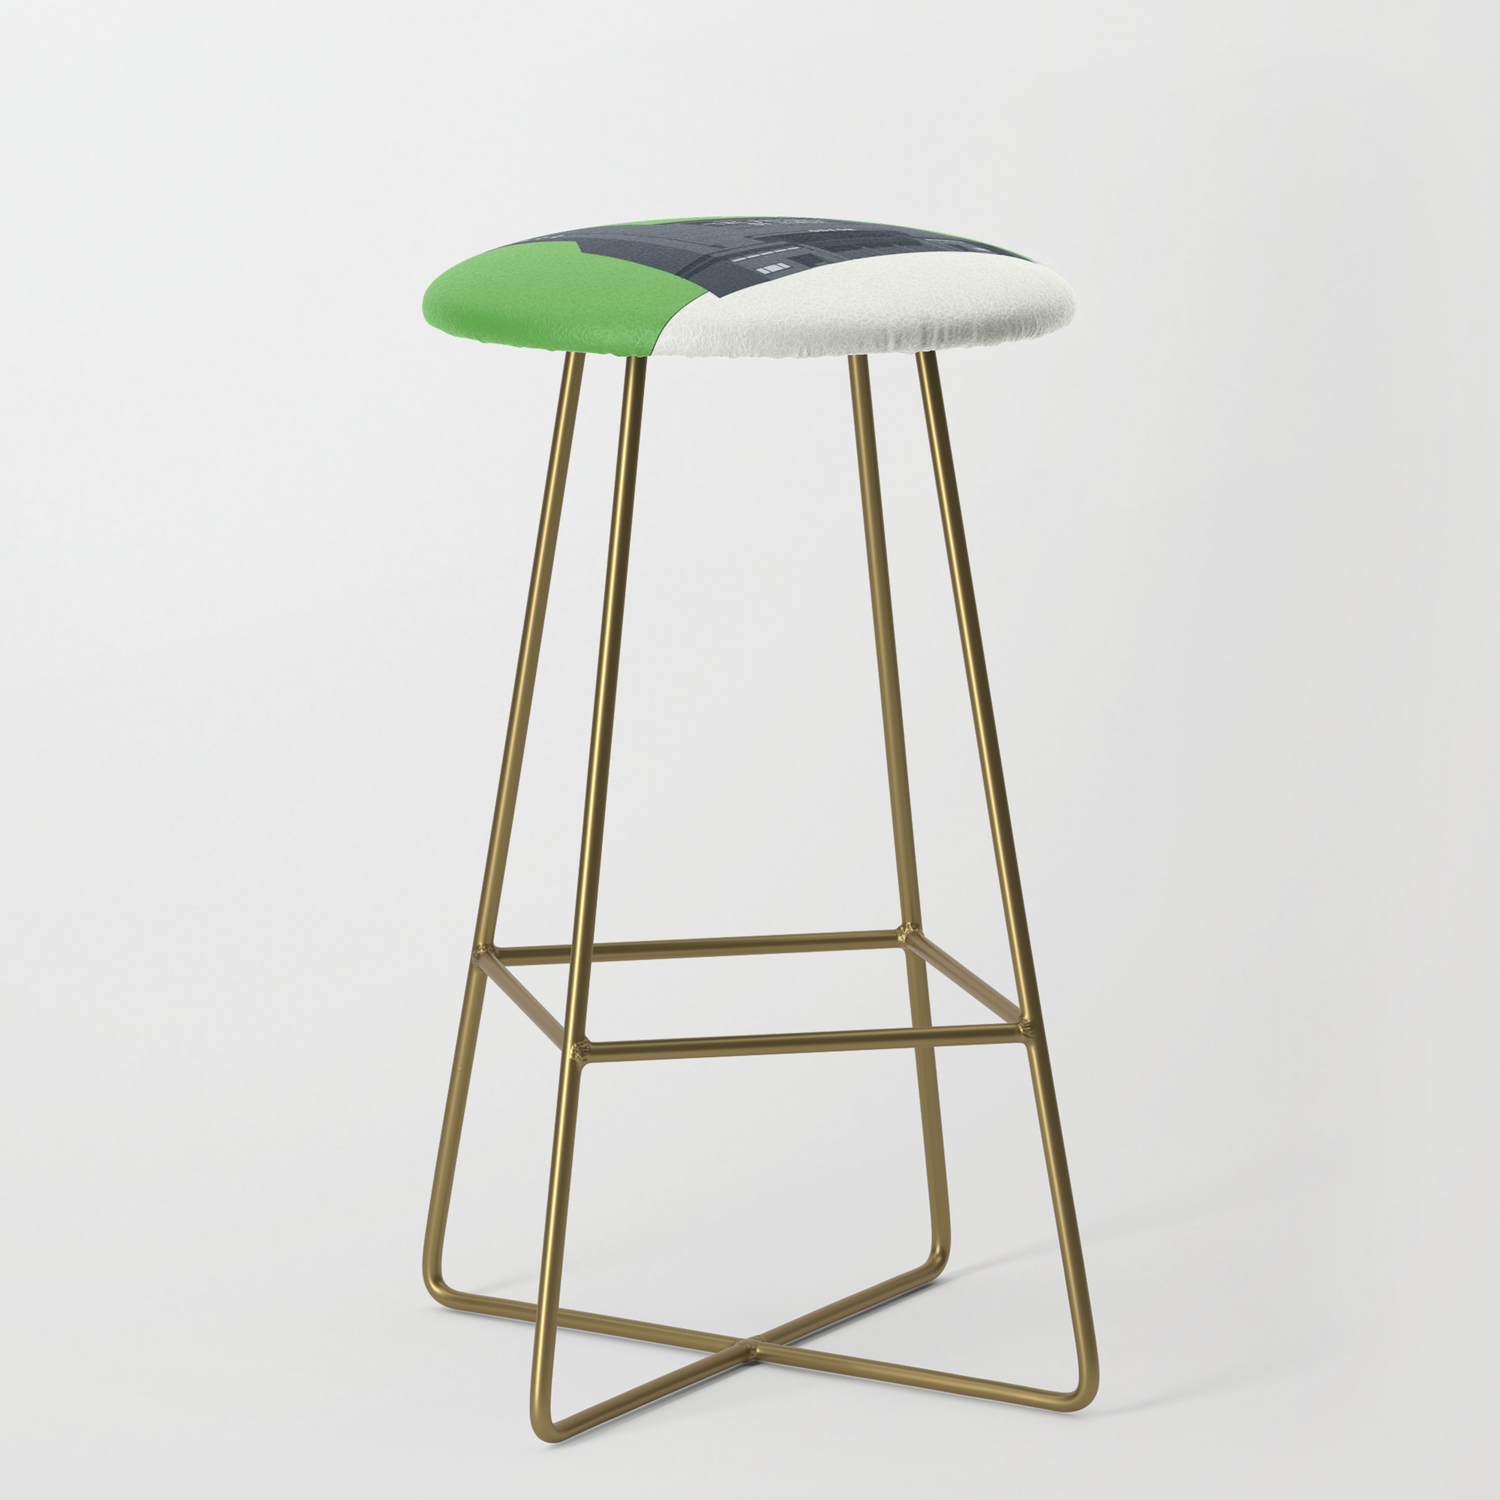 ODEON Leicester Square Bar Stool by Pig's Ear Gear